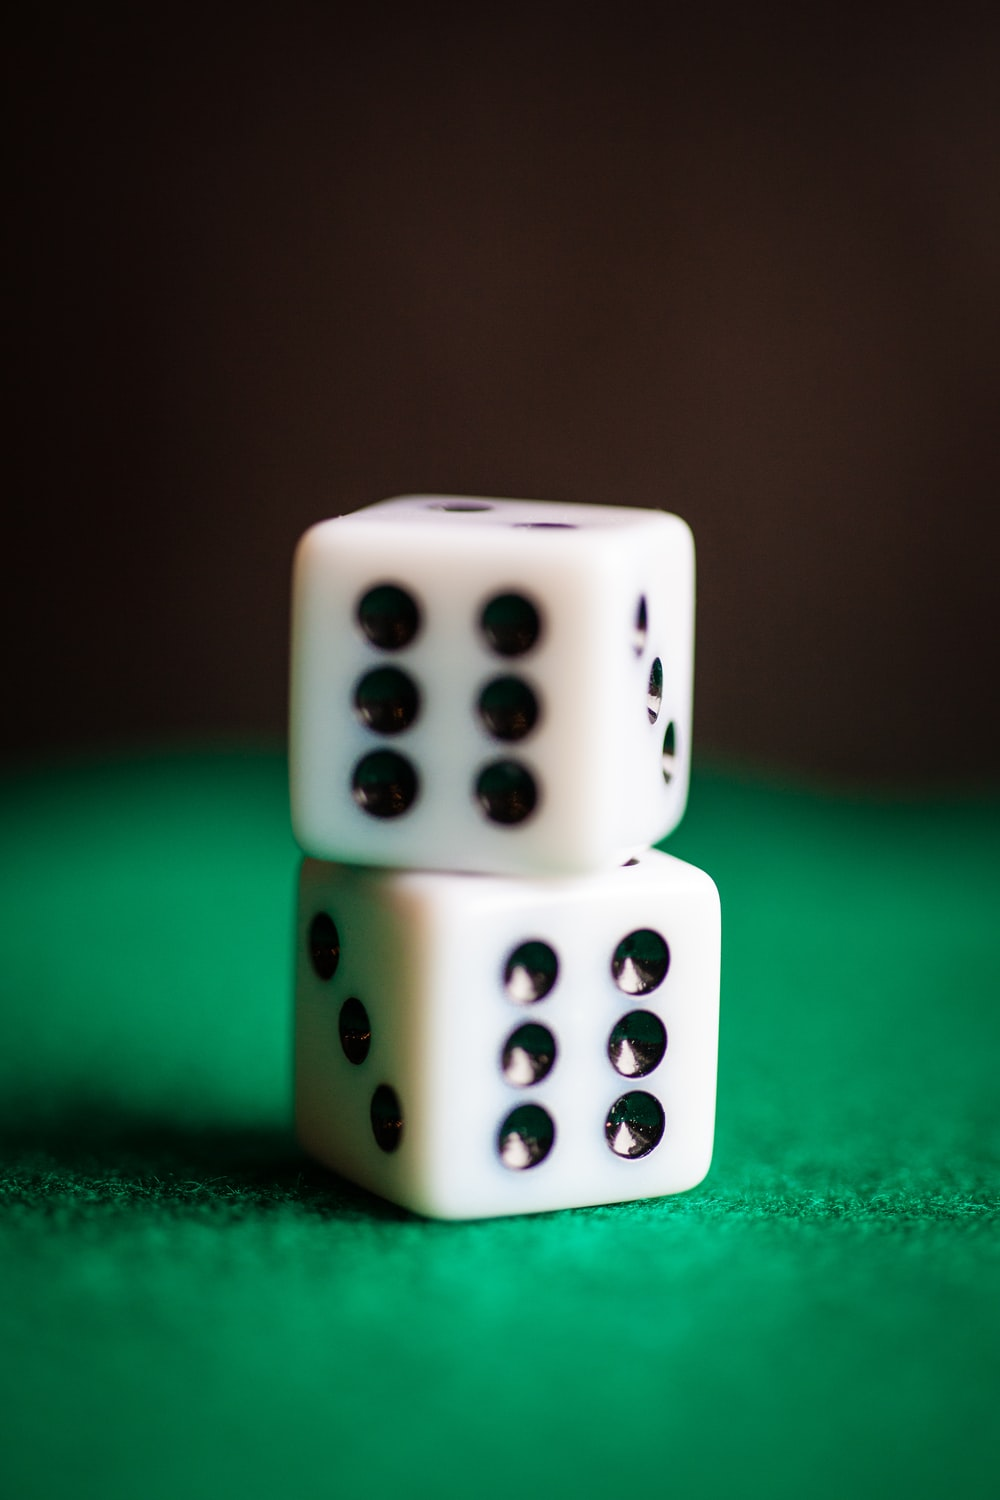 two white-and-black die